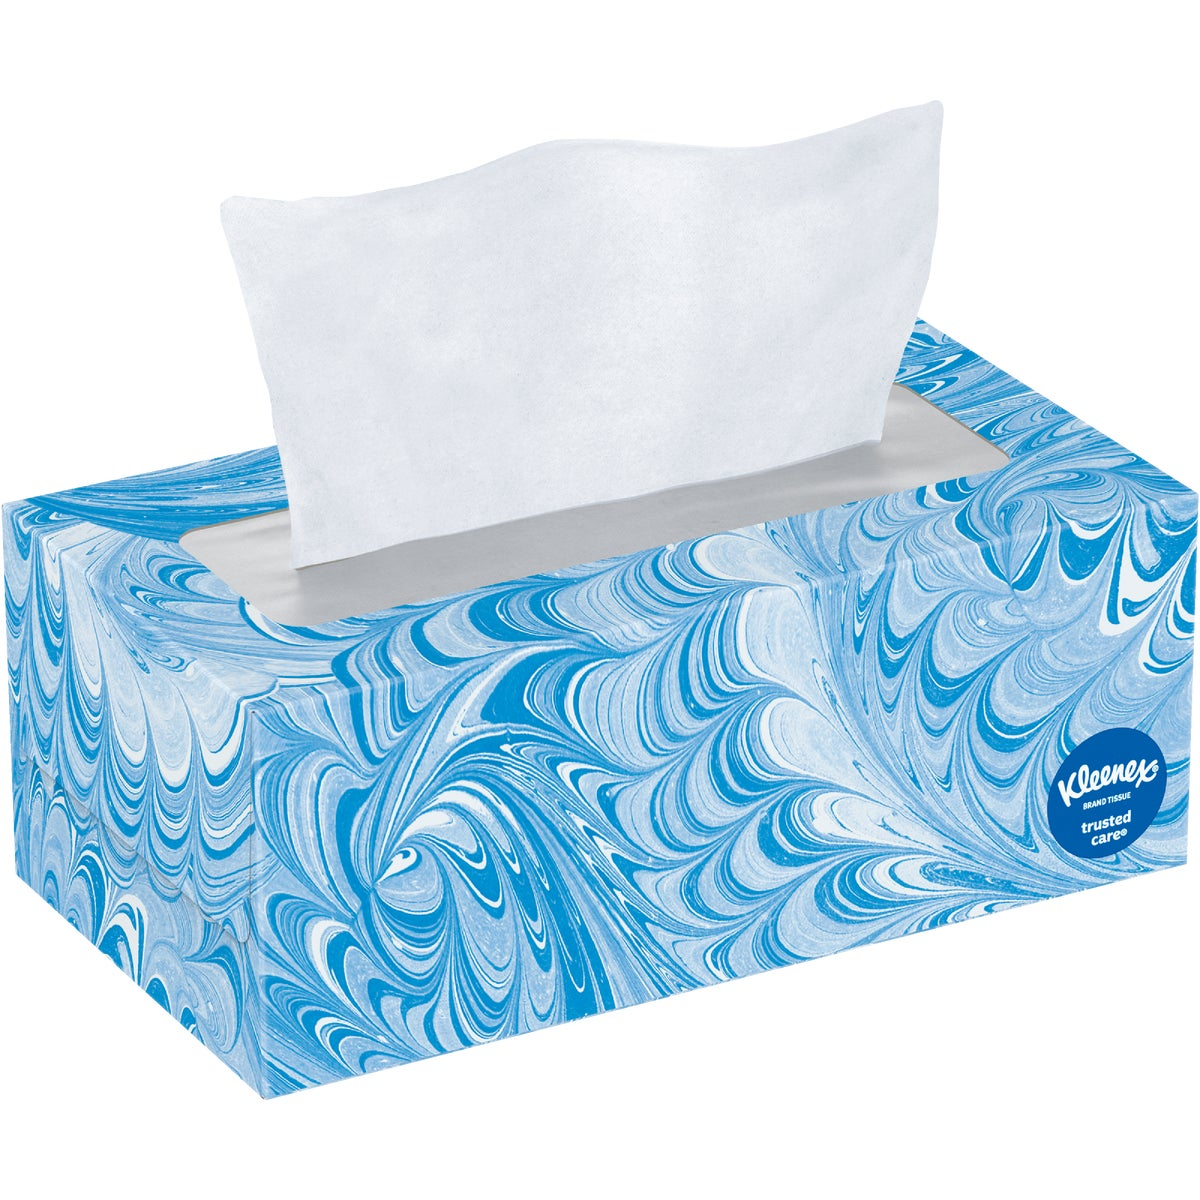 KLEENEX FACIAL WH TISSUE - 37390 by Kimberly Clark